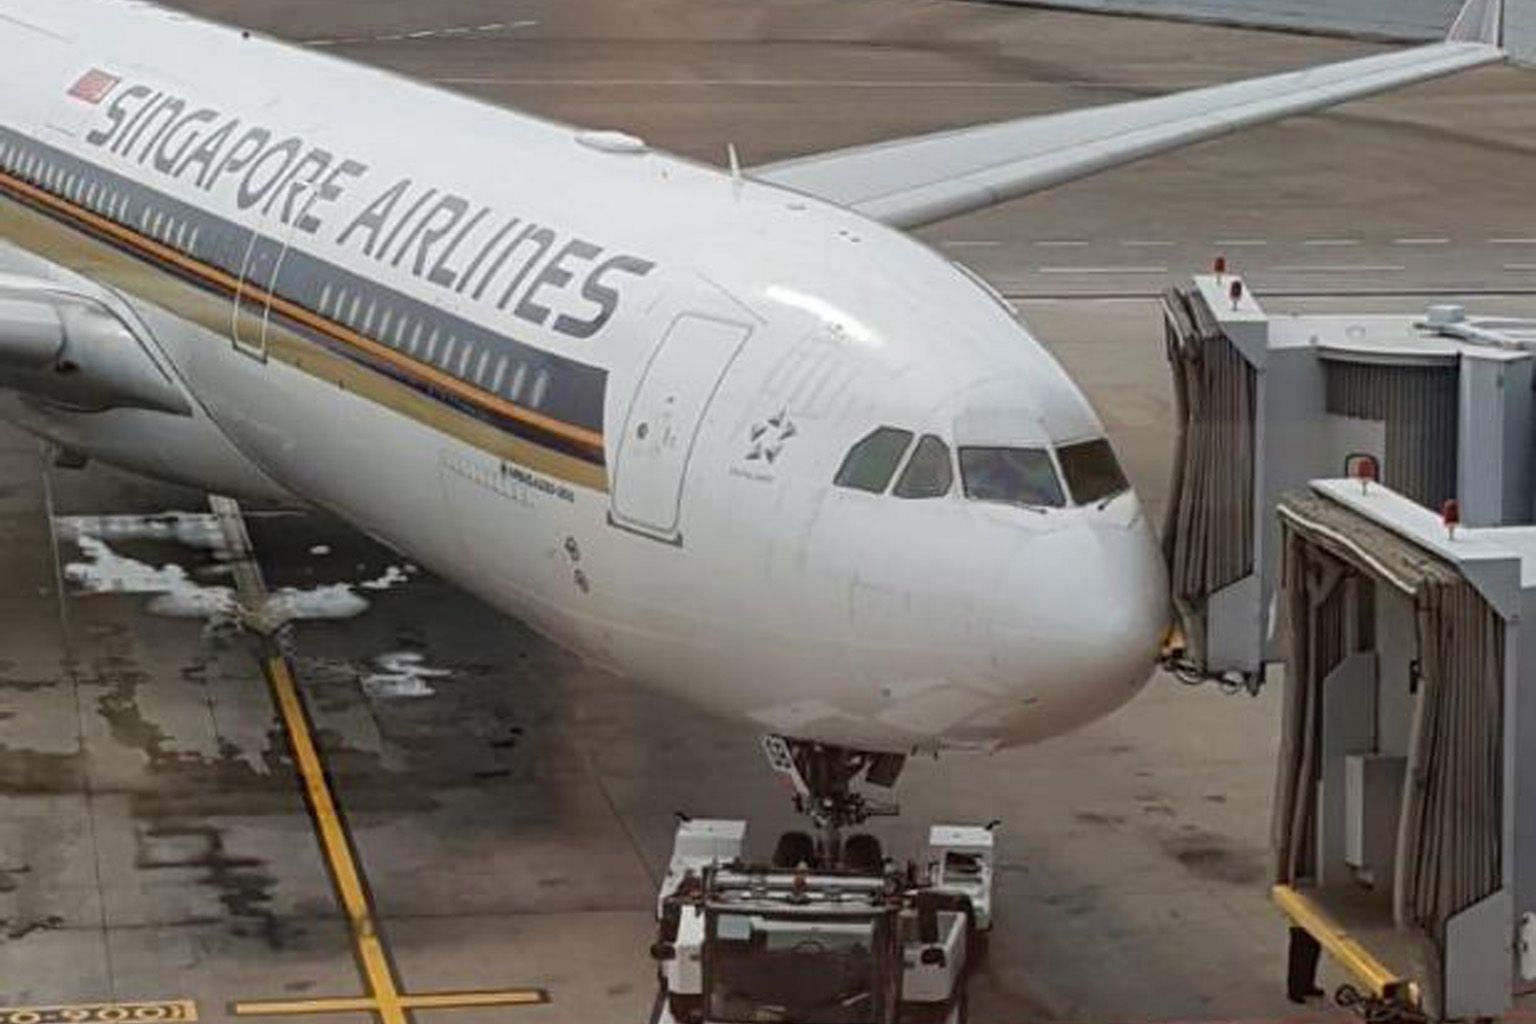 The front body near the nose of the Airbus 330-300 hit one of two aerobridges that were used for boarding on Tuesday.